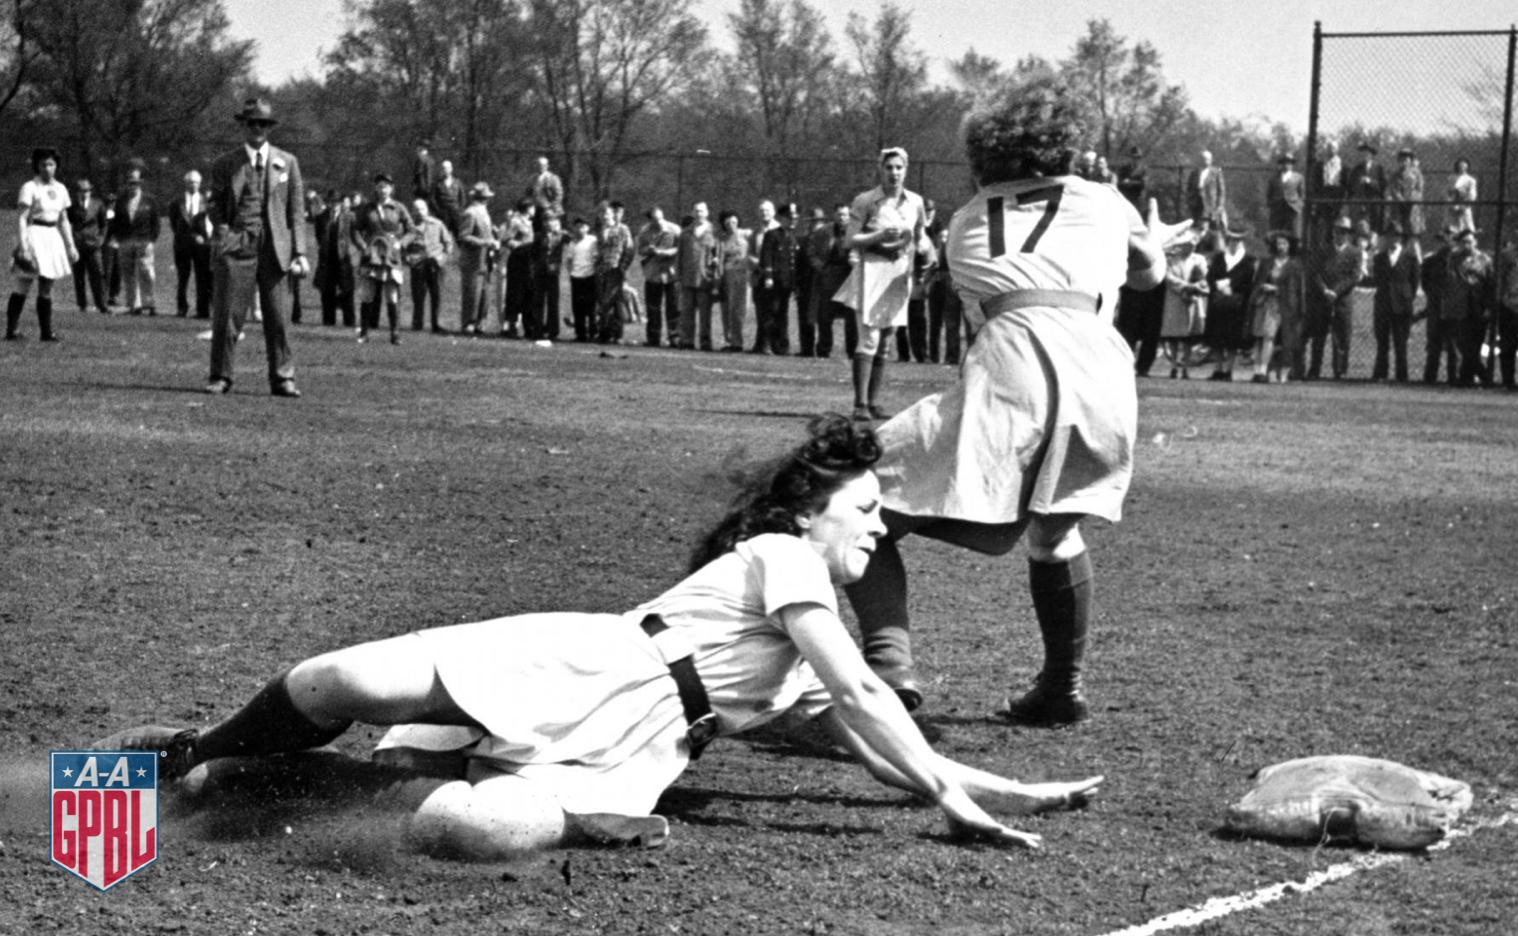 Dirt in the skirt!  #AAGPBL https://t.co/UBIf0ZAva4